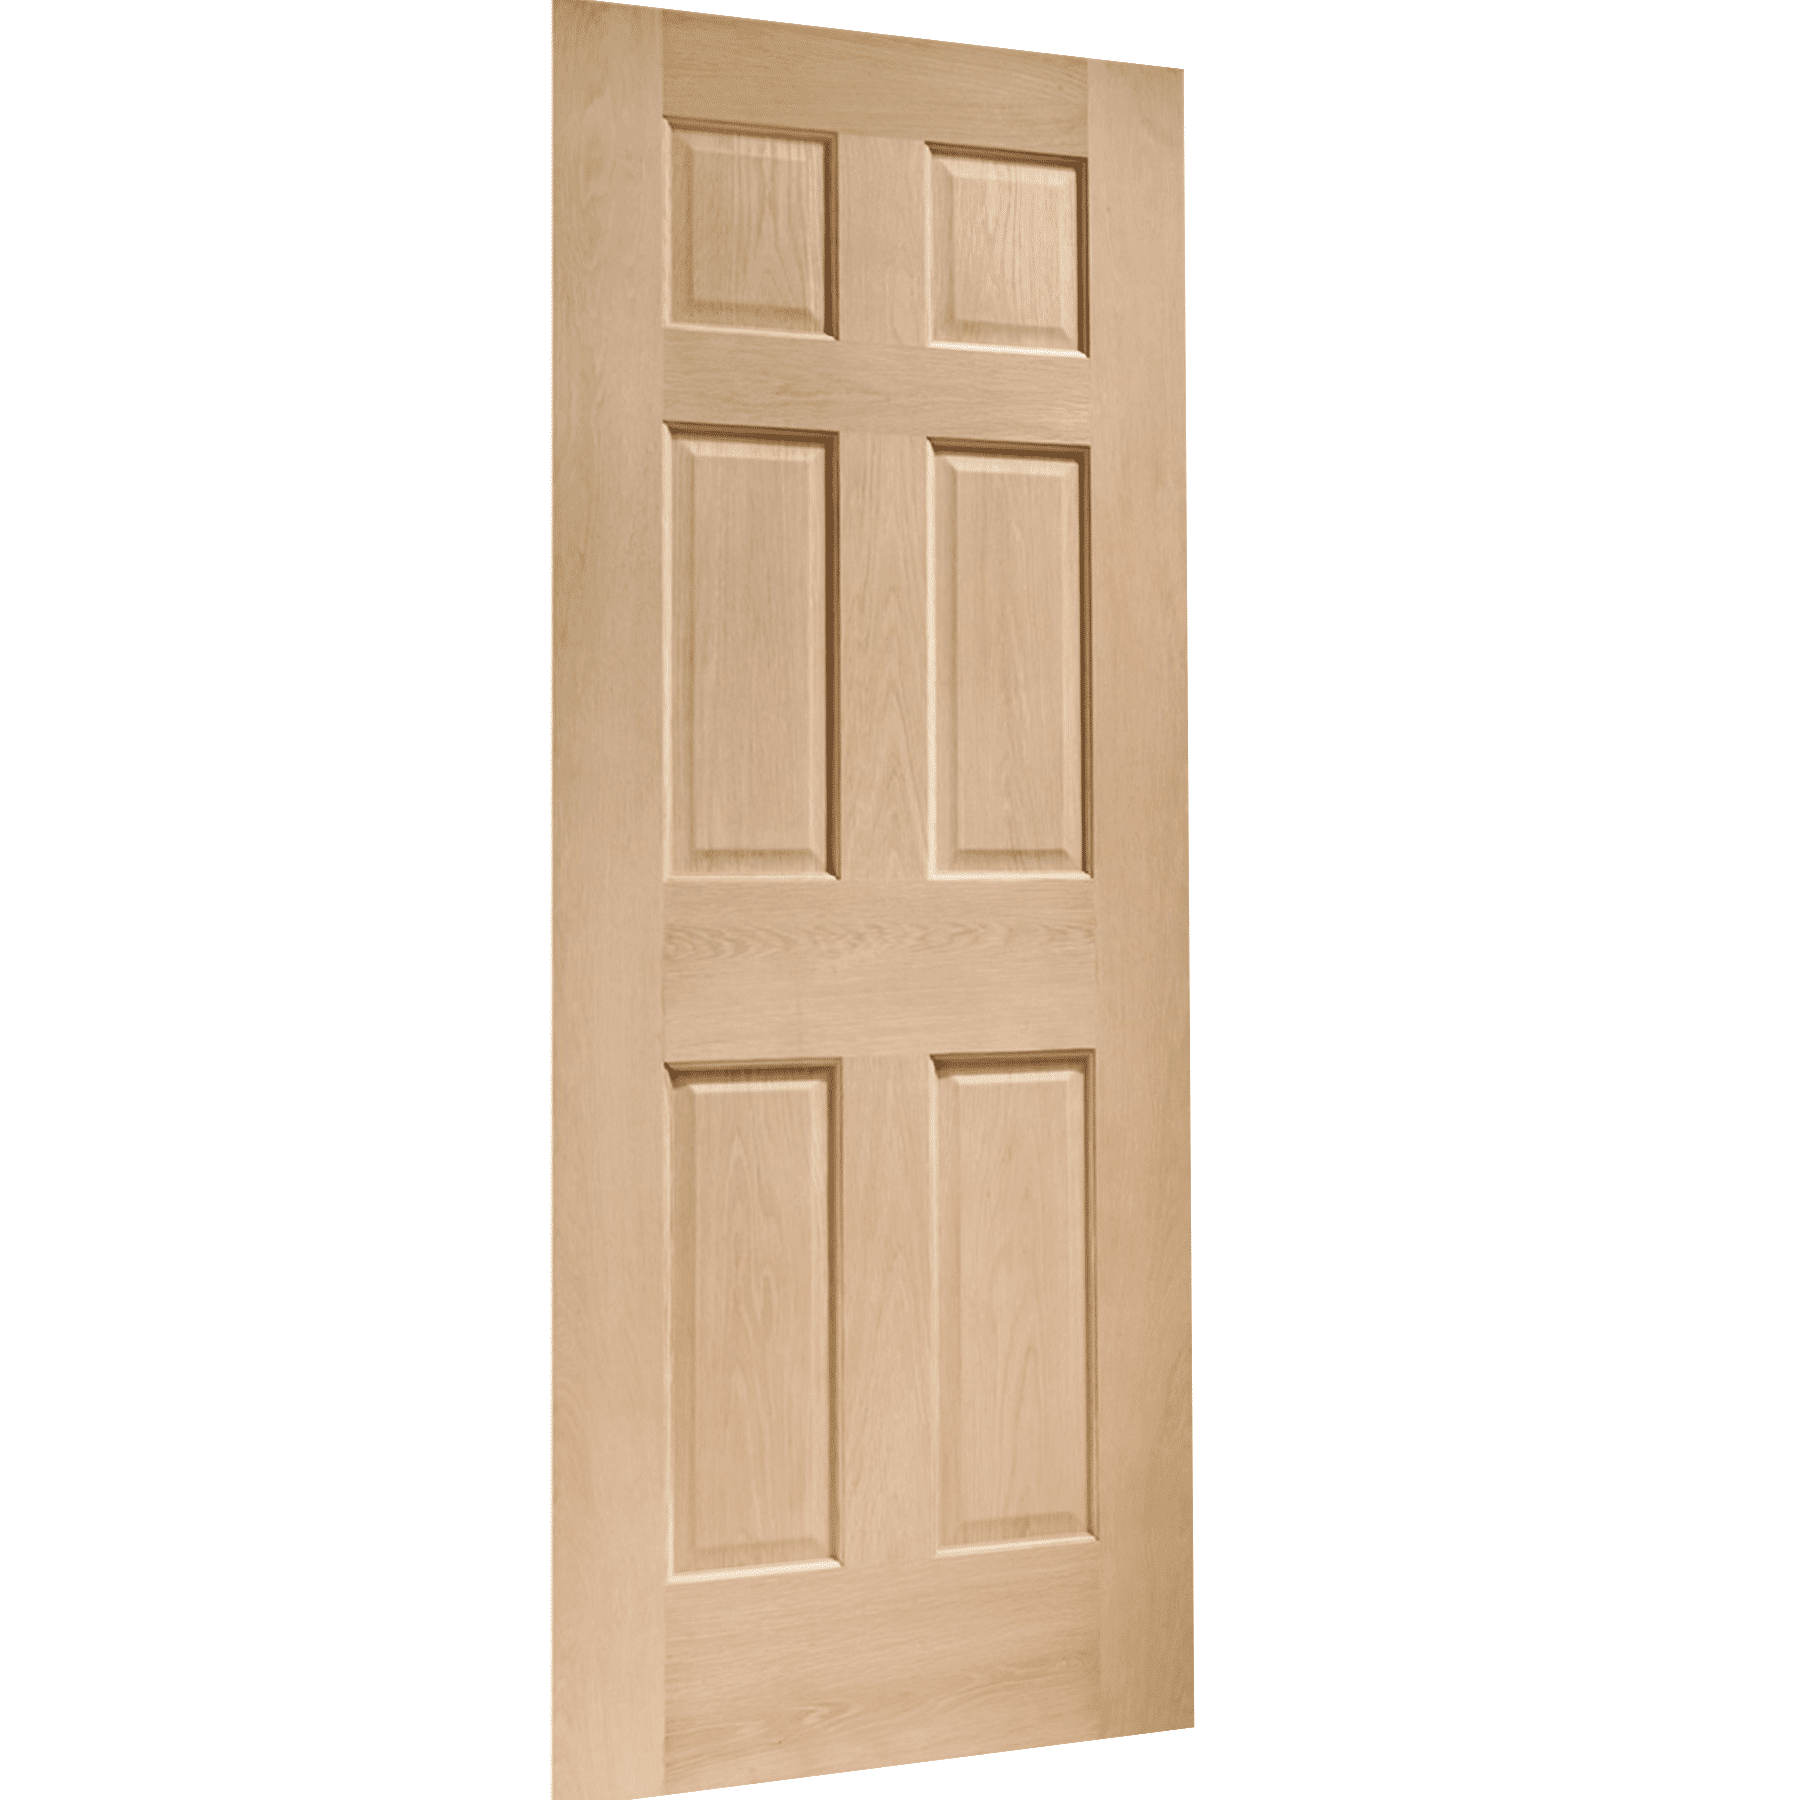 diy door wooden front makeover interior doors watch